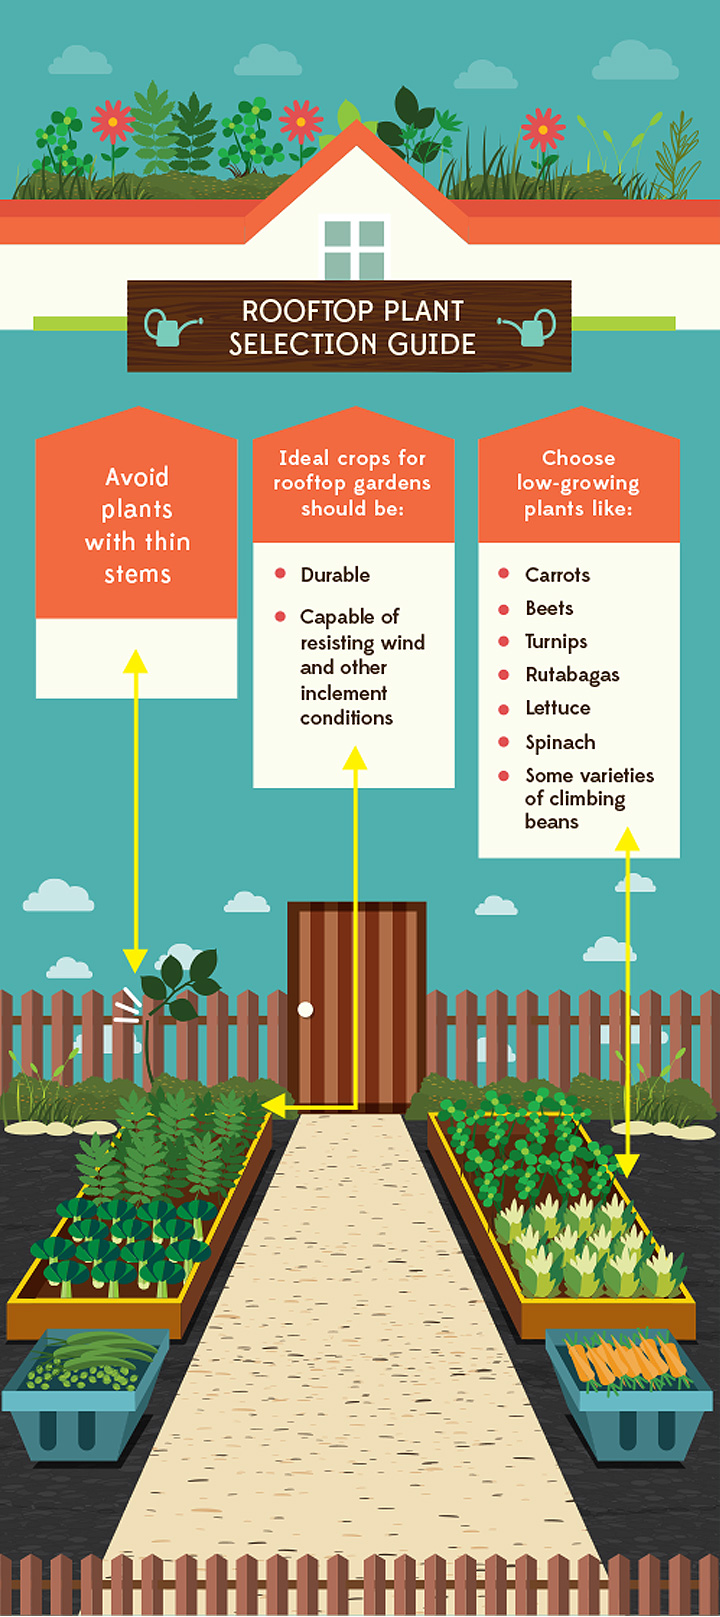 rooftop-garden roof preparation infographic